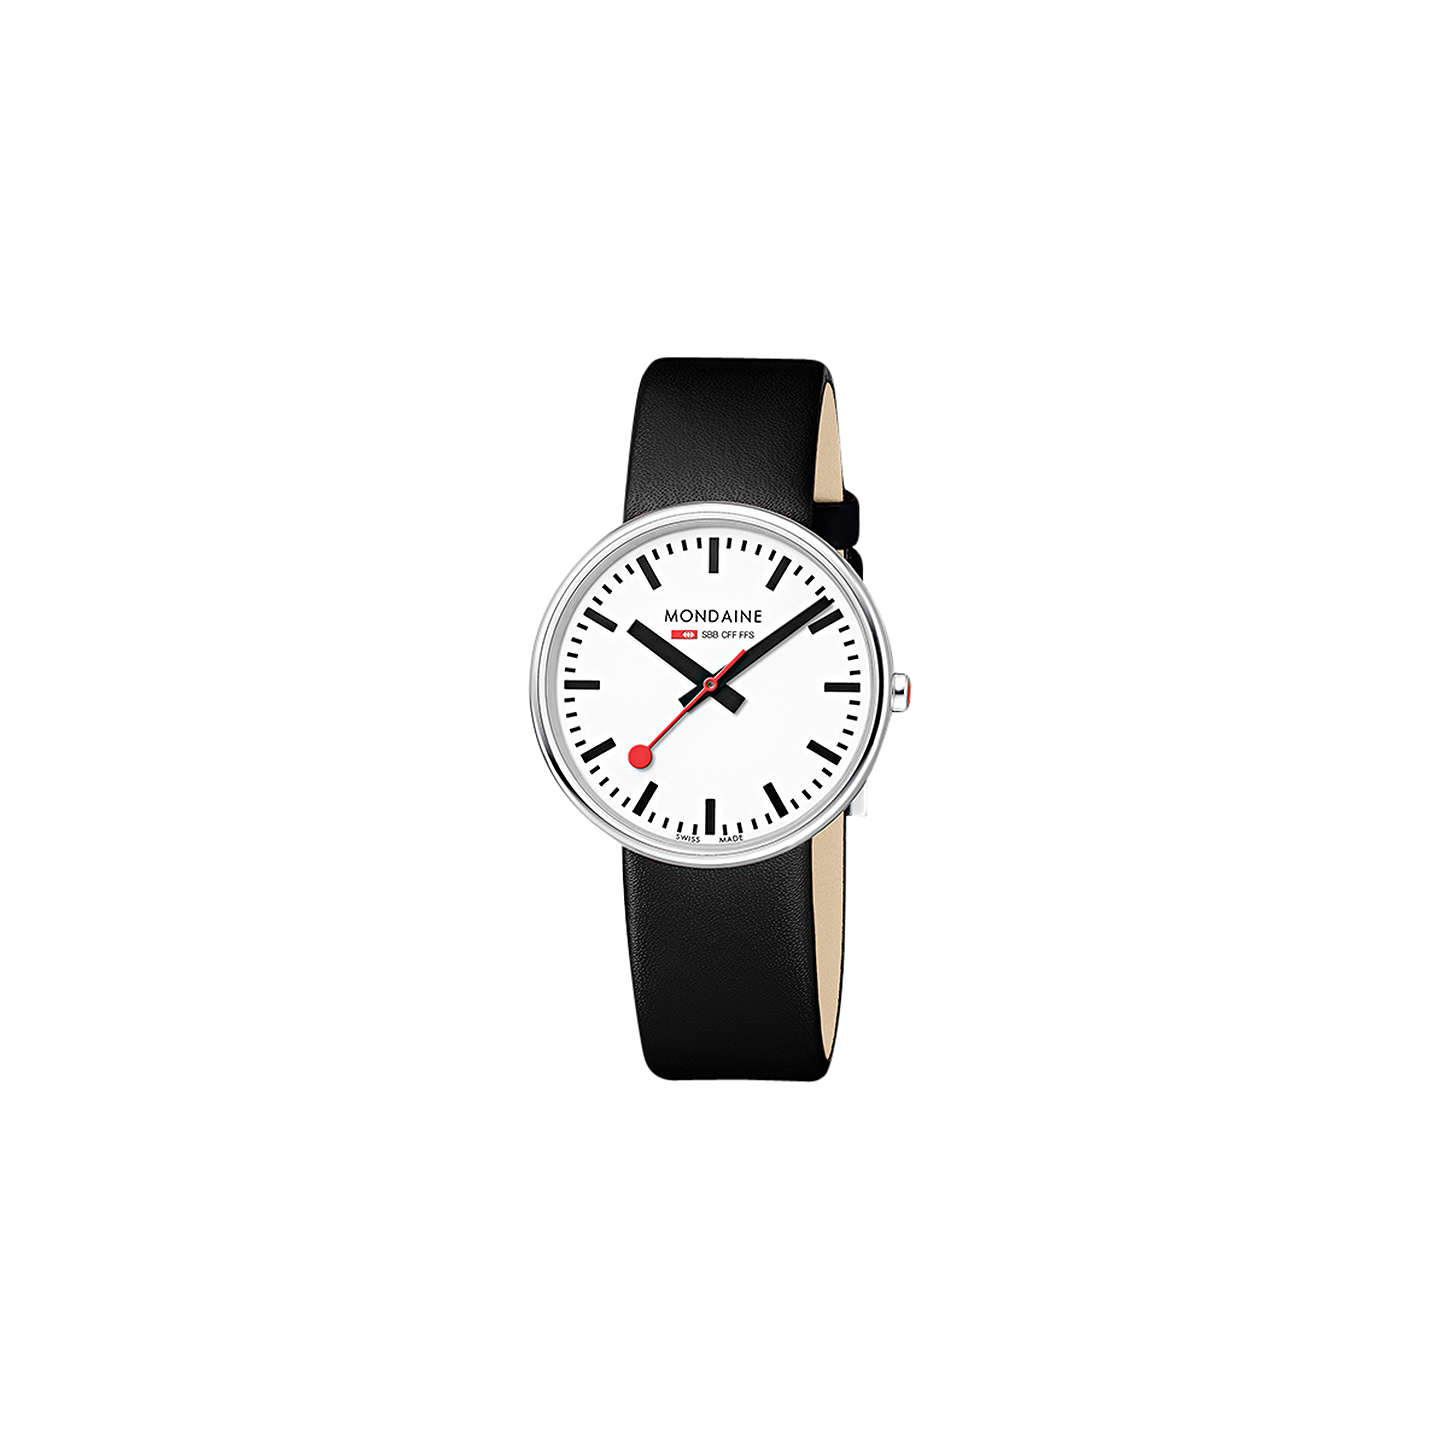 prices at in analog amazon india online low watches dial timewear black unisex watch couple dp buy